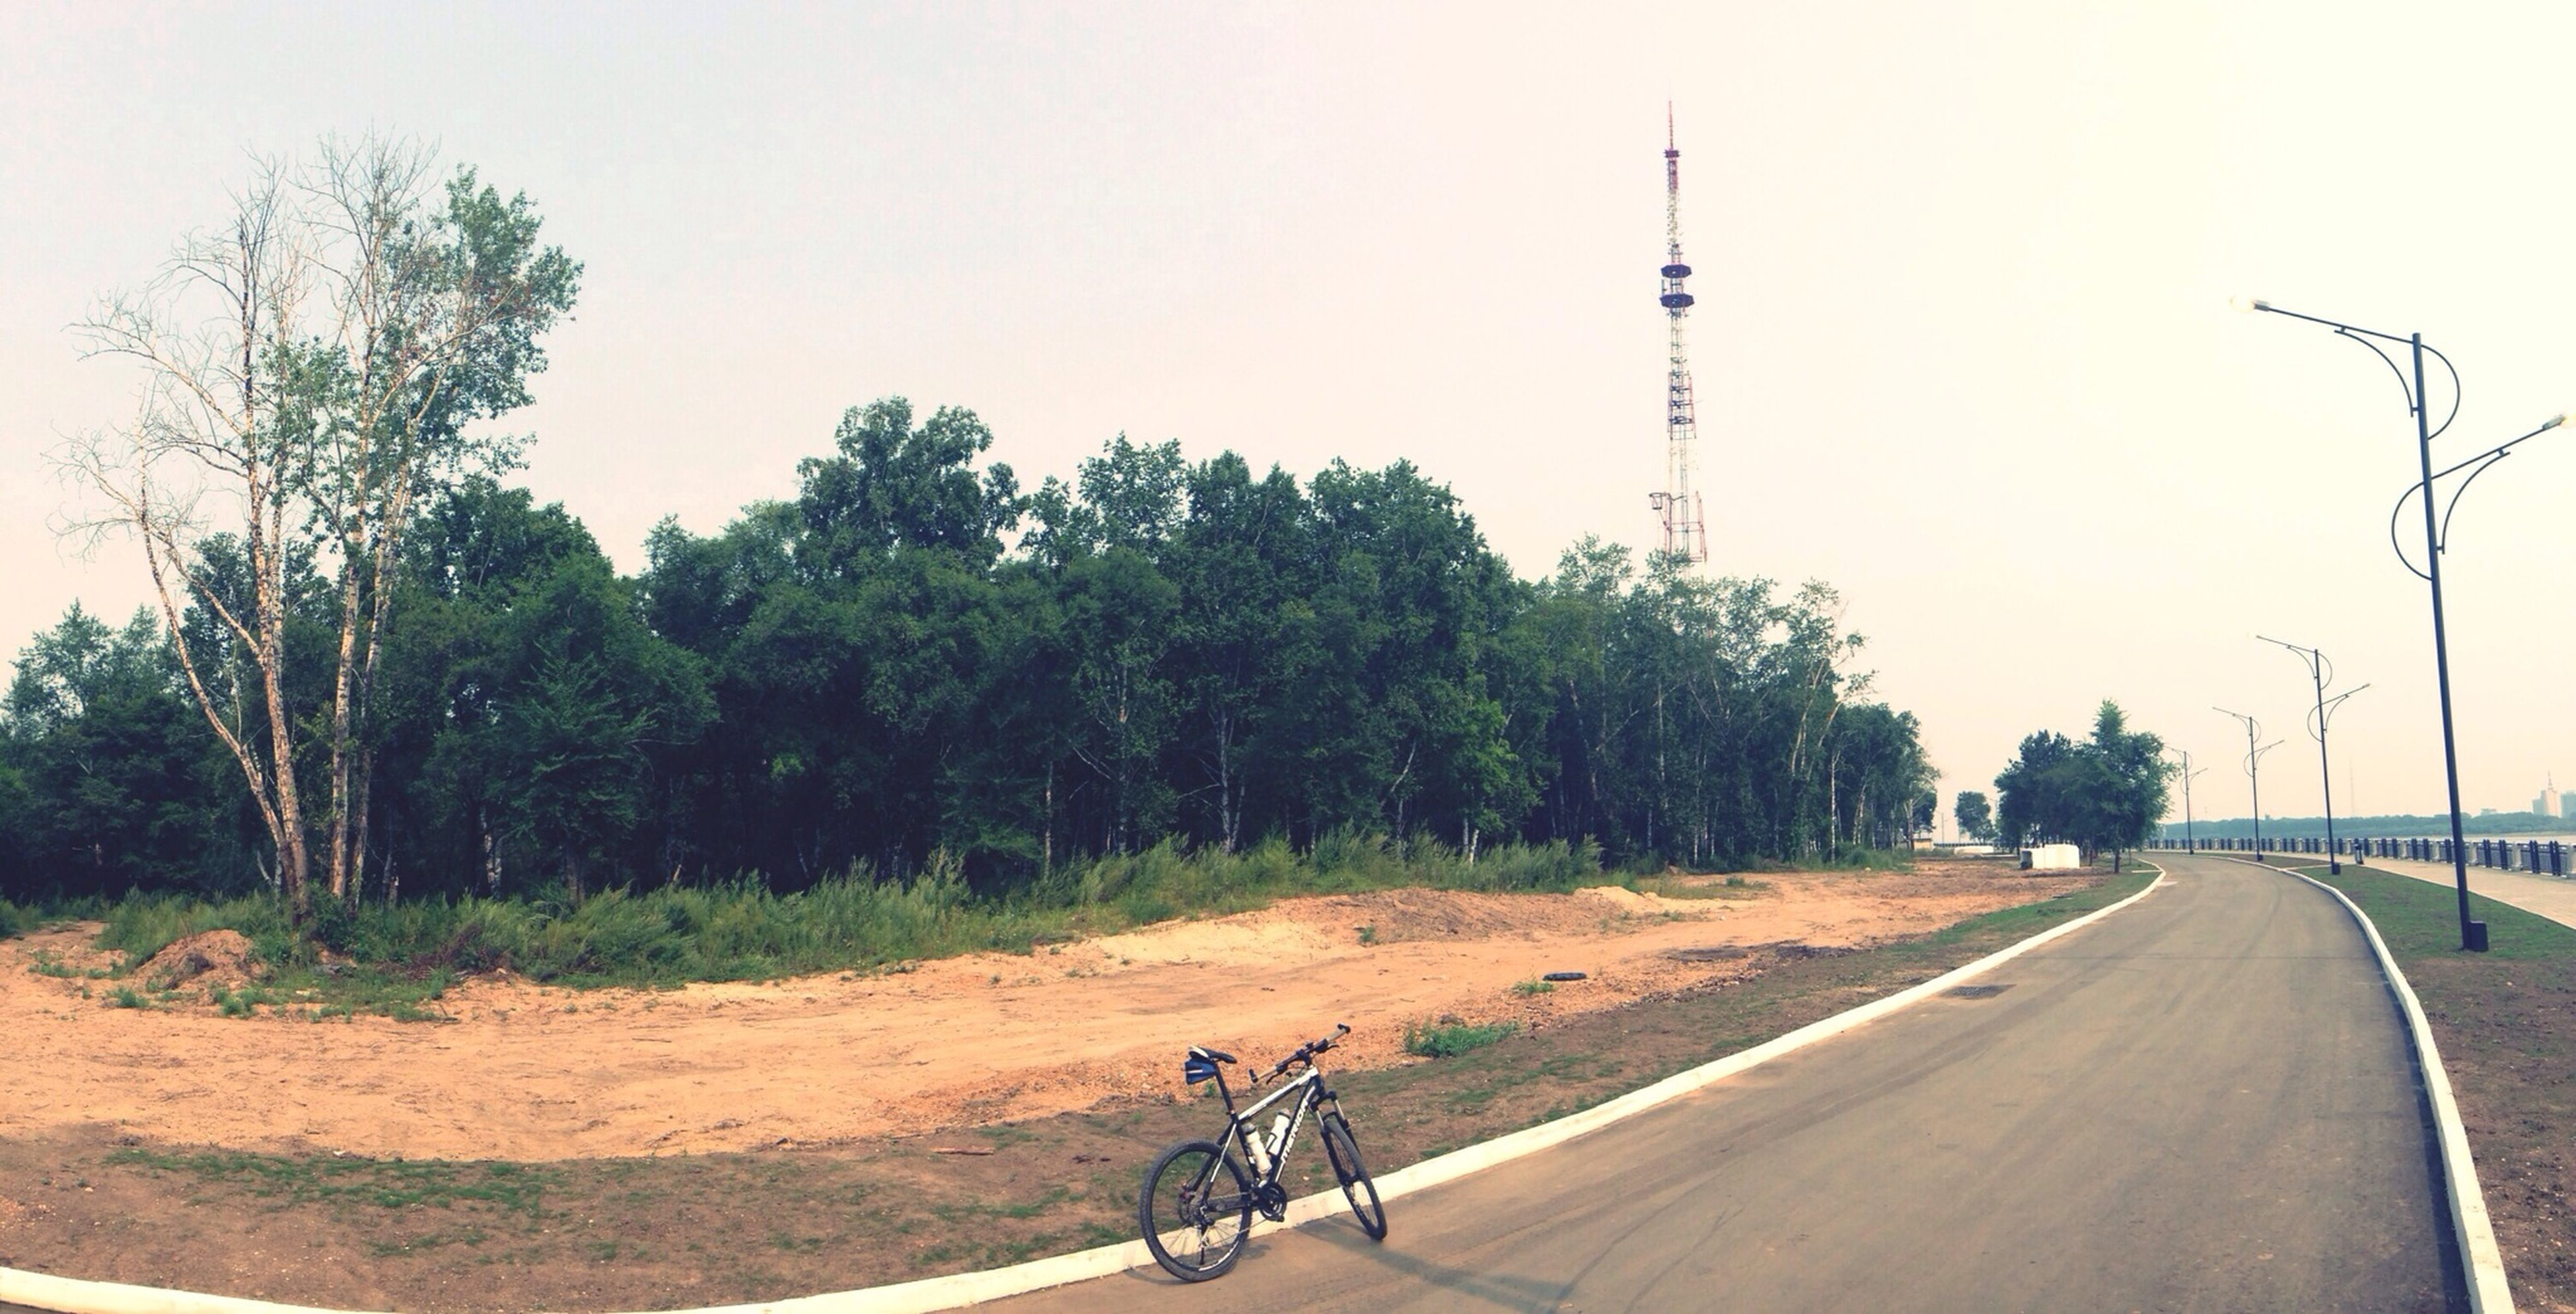 transportation, the way forward, tree, road, clear sky, bicycle, diminishing perspective, copy space, vanishing point, street, land vehicle, country road, street light, mode of transport, tranquility, road marking, sky, tranquil scene, nature, outdoors